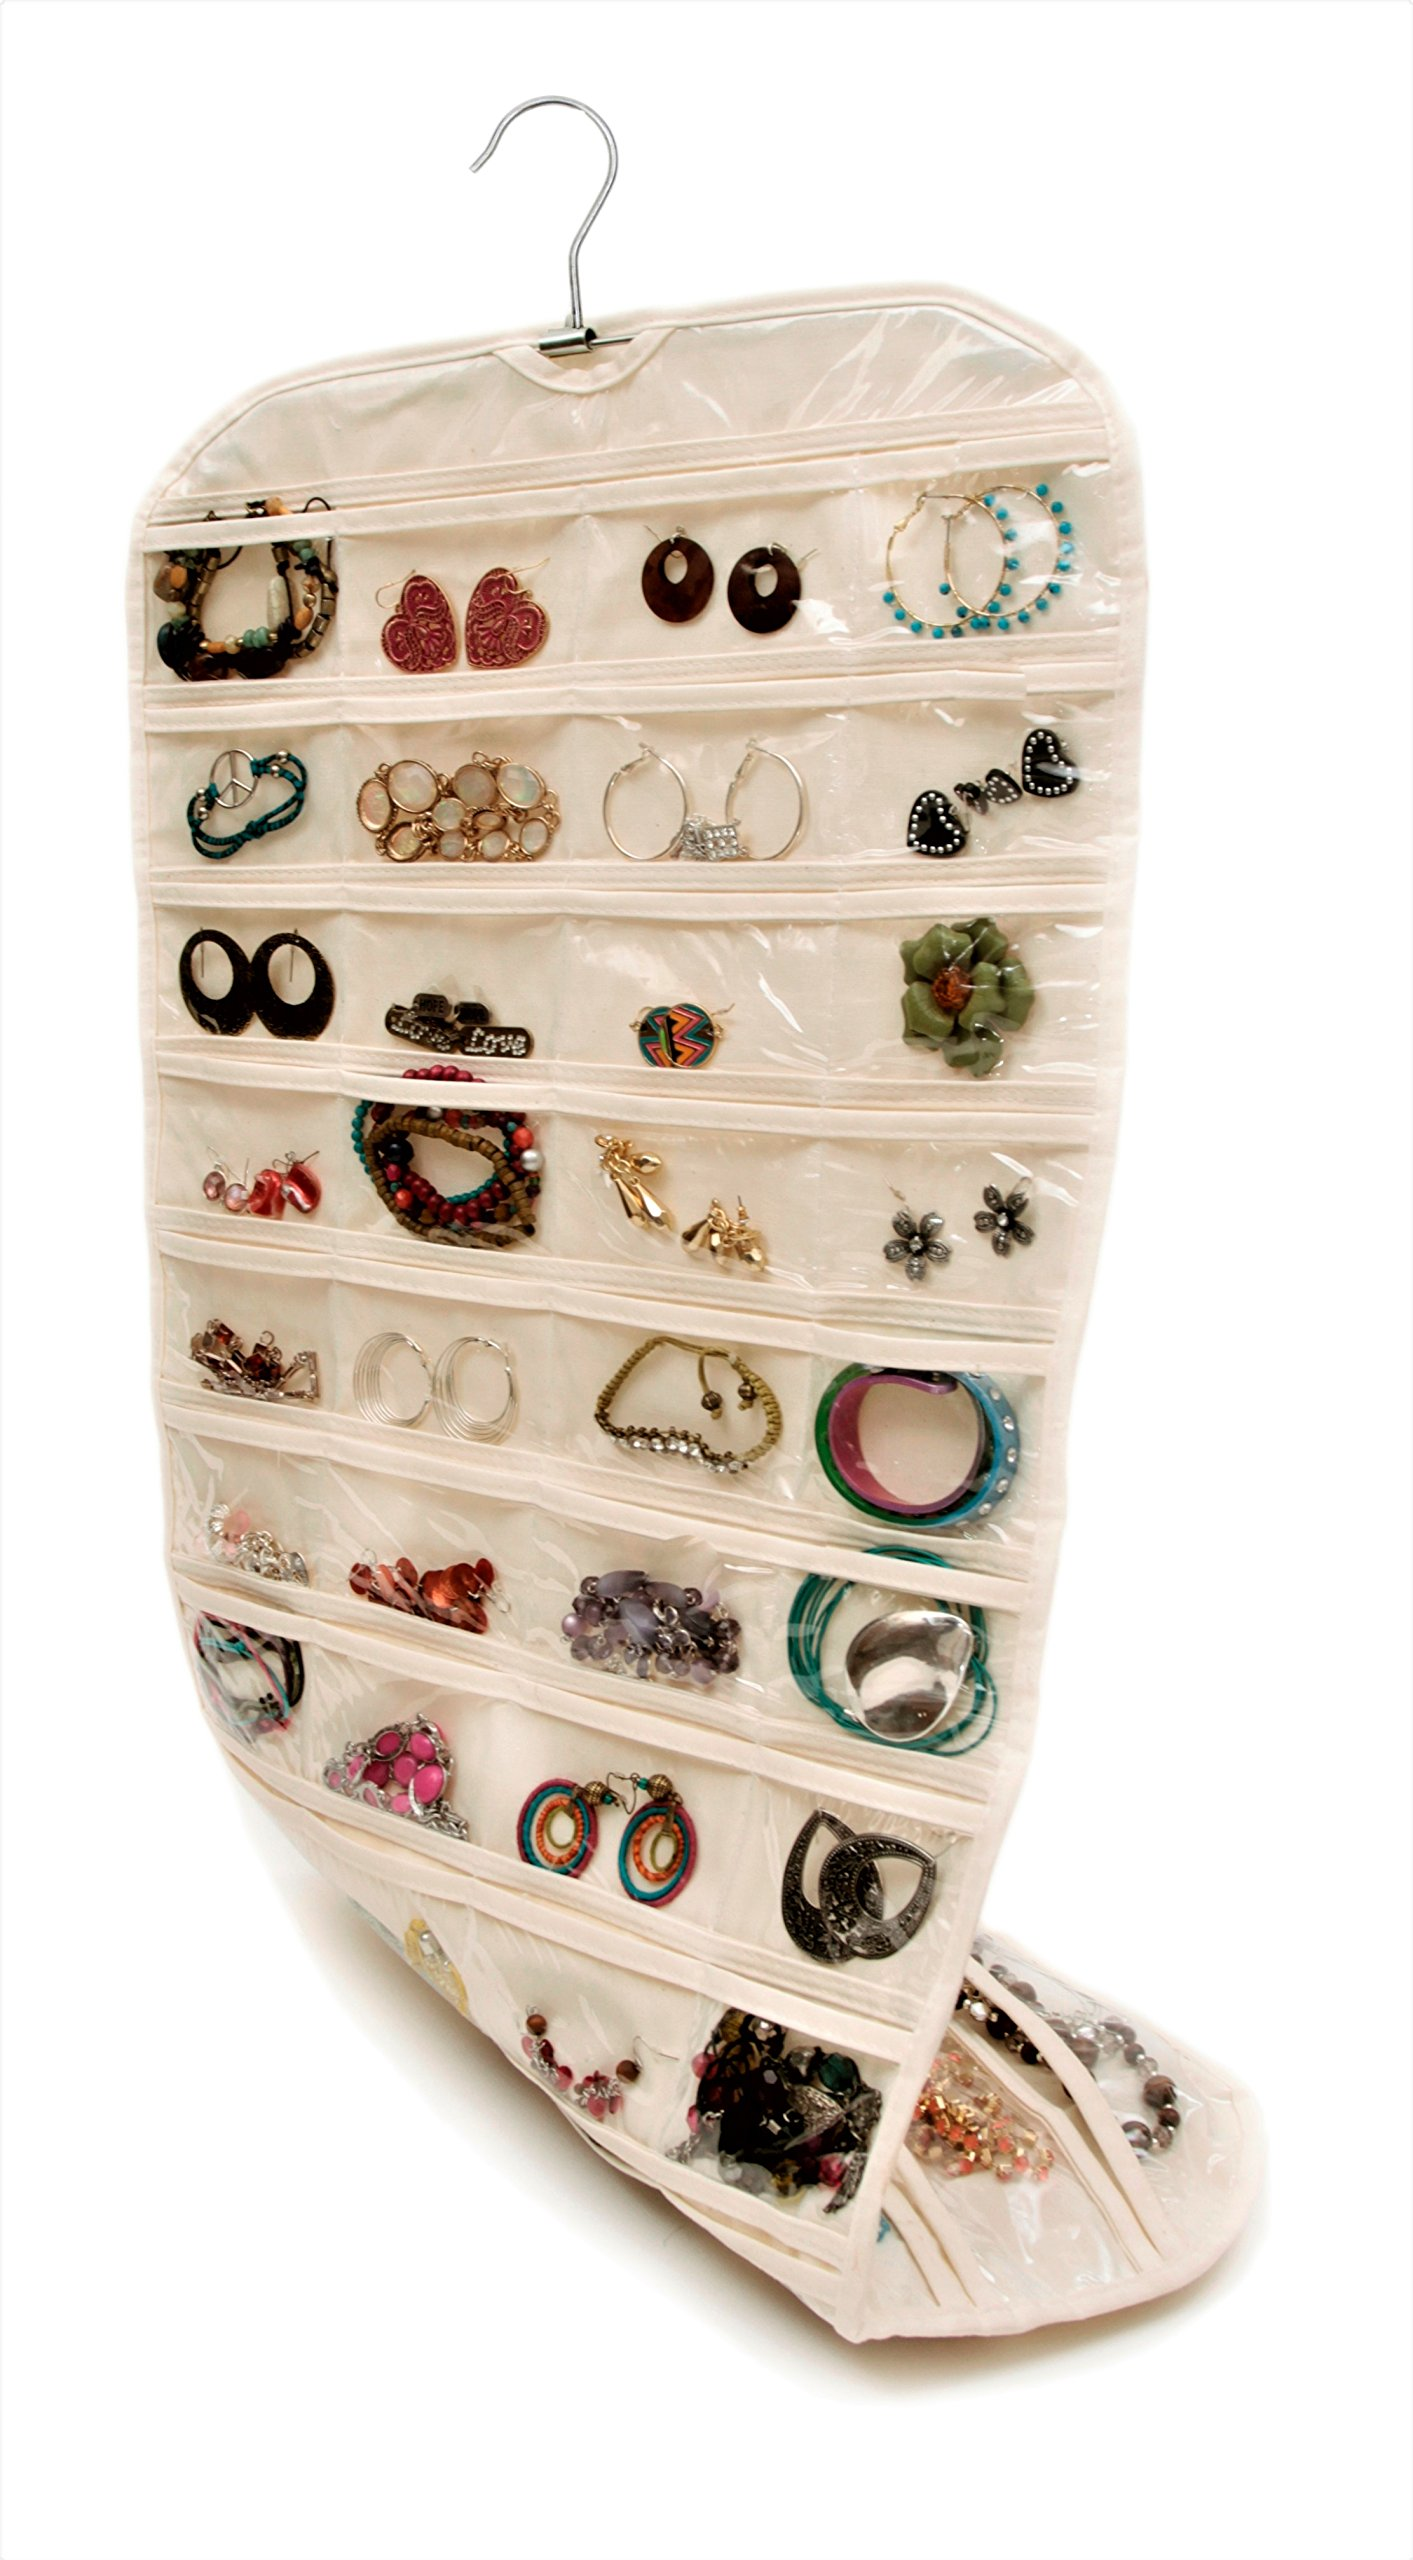 Closet Complete Premium Quality CANVAS, Hanging Jewelry Organizer | Double Sided, 360 Degree Rotation, 80 Pockets | Best for Jewelry & Accessory Organization